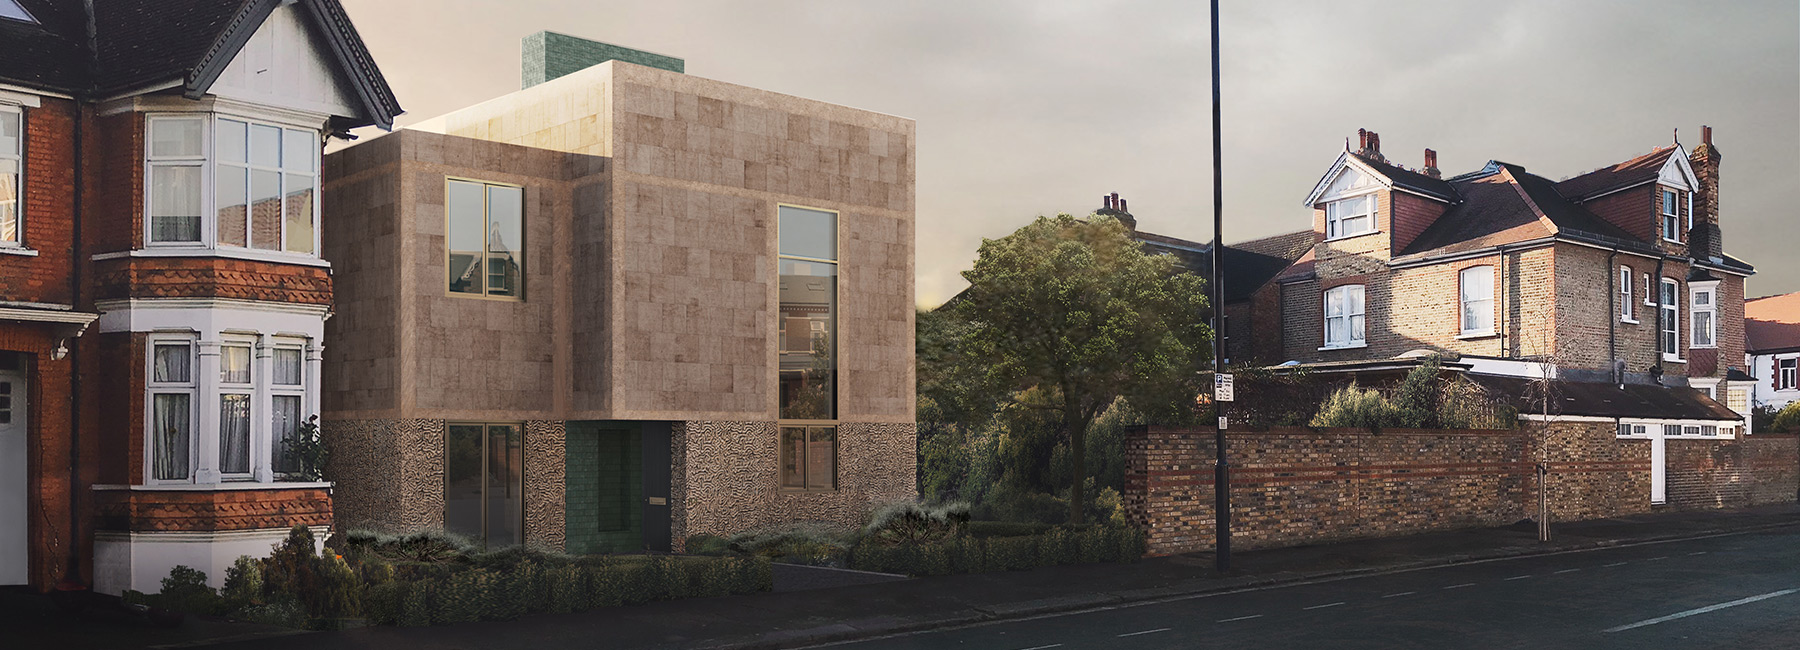 Zenki Haus Design David Adjaye Among Architects Designing Modular Homes For Cube Haus